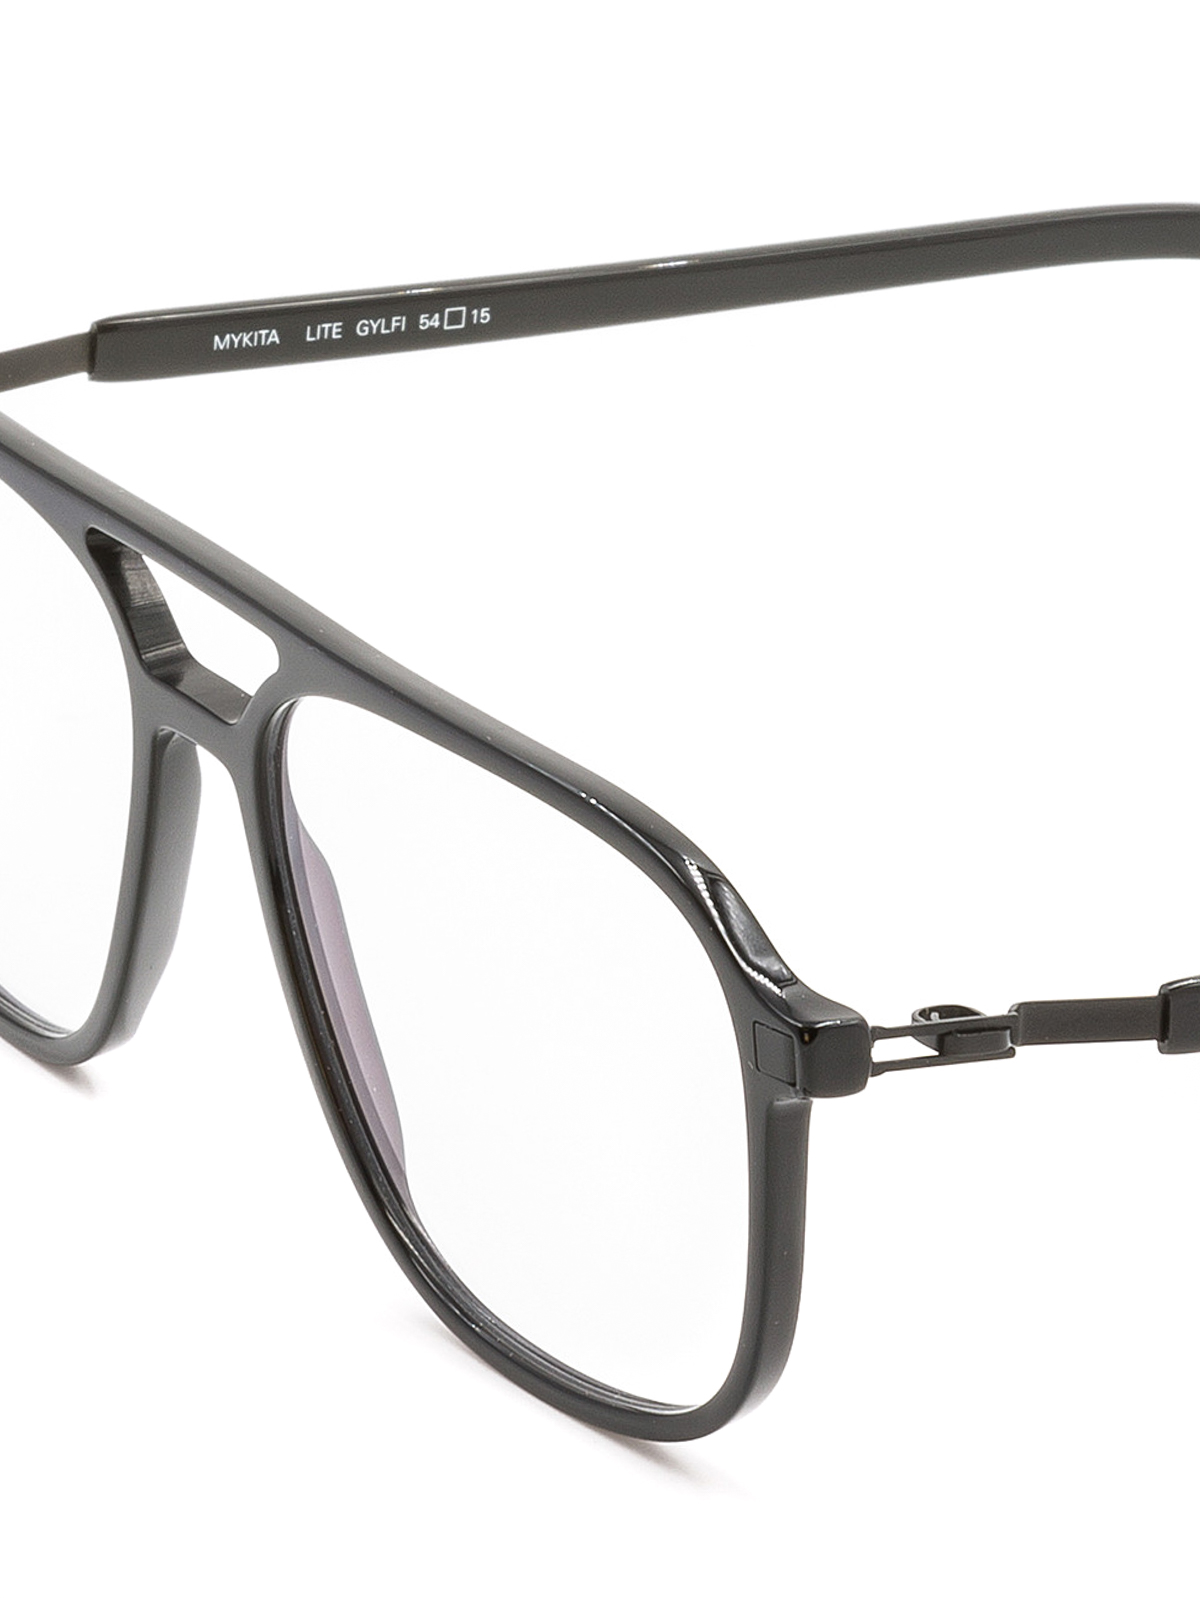 8aa4b93d022 Mykita Mykita Glasses in 2019 Glasses Eyeglasses Optical glasses